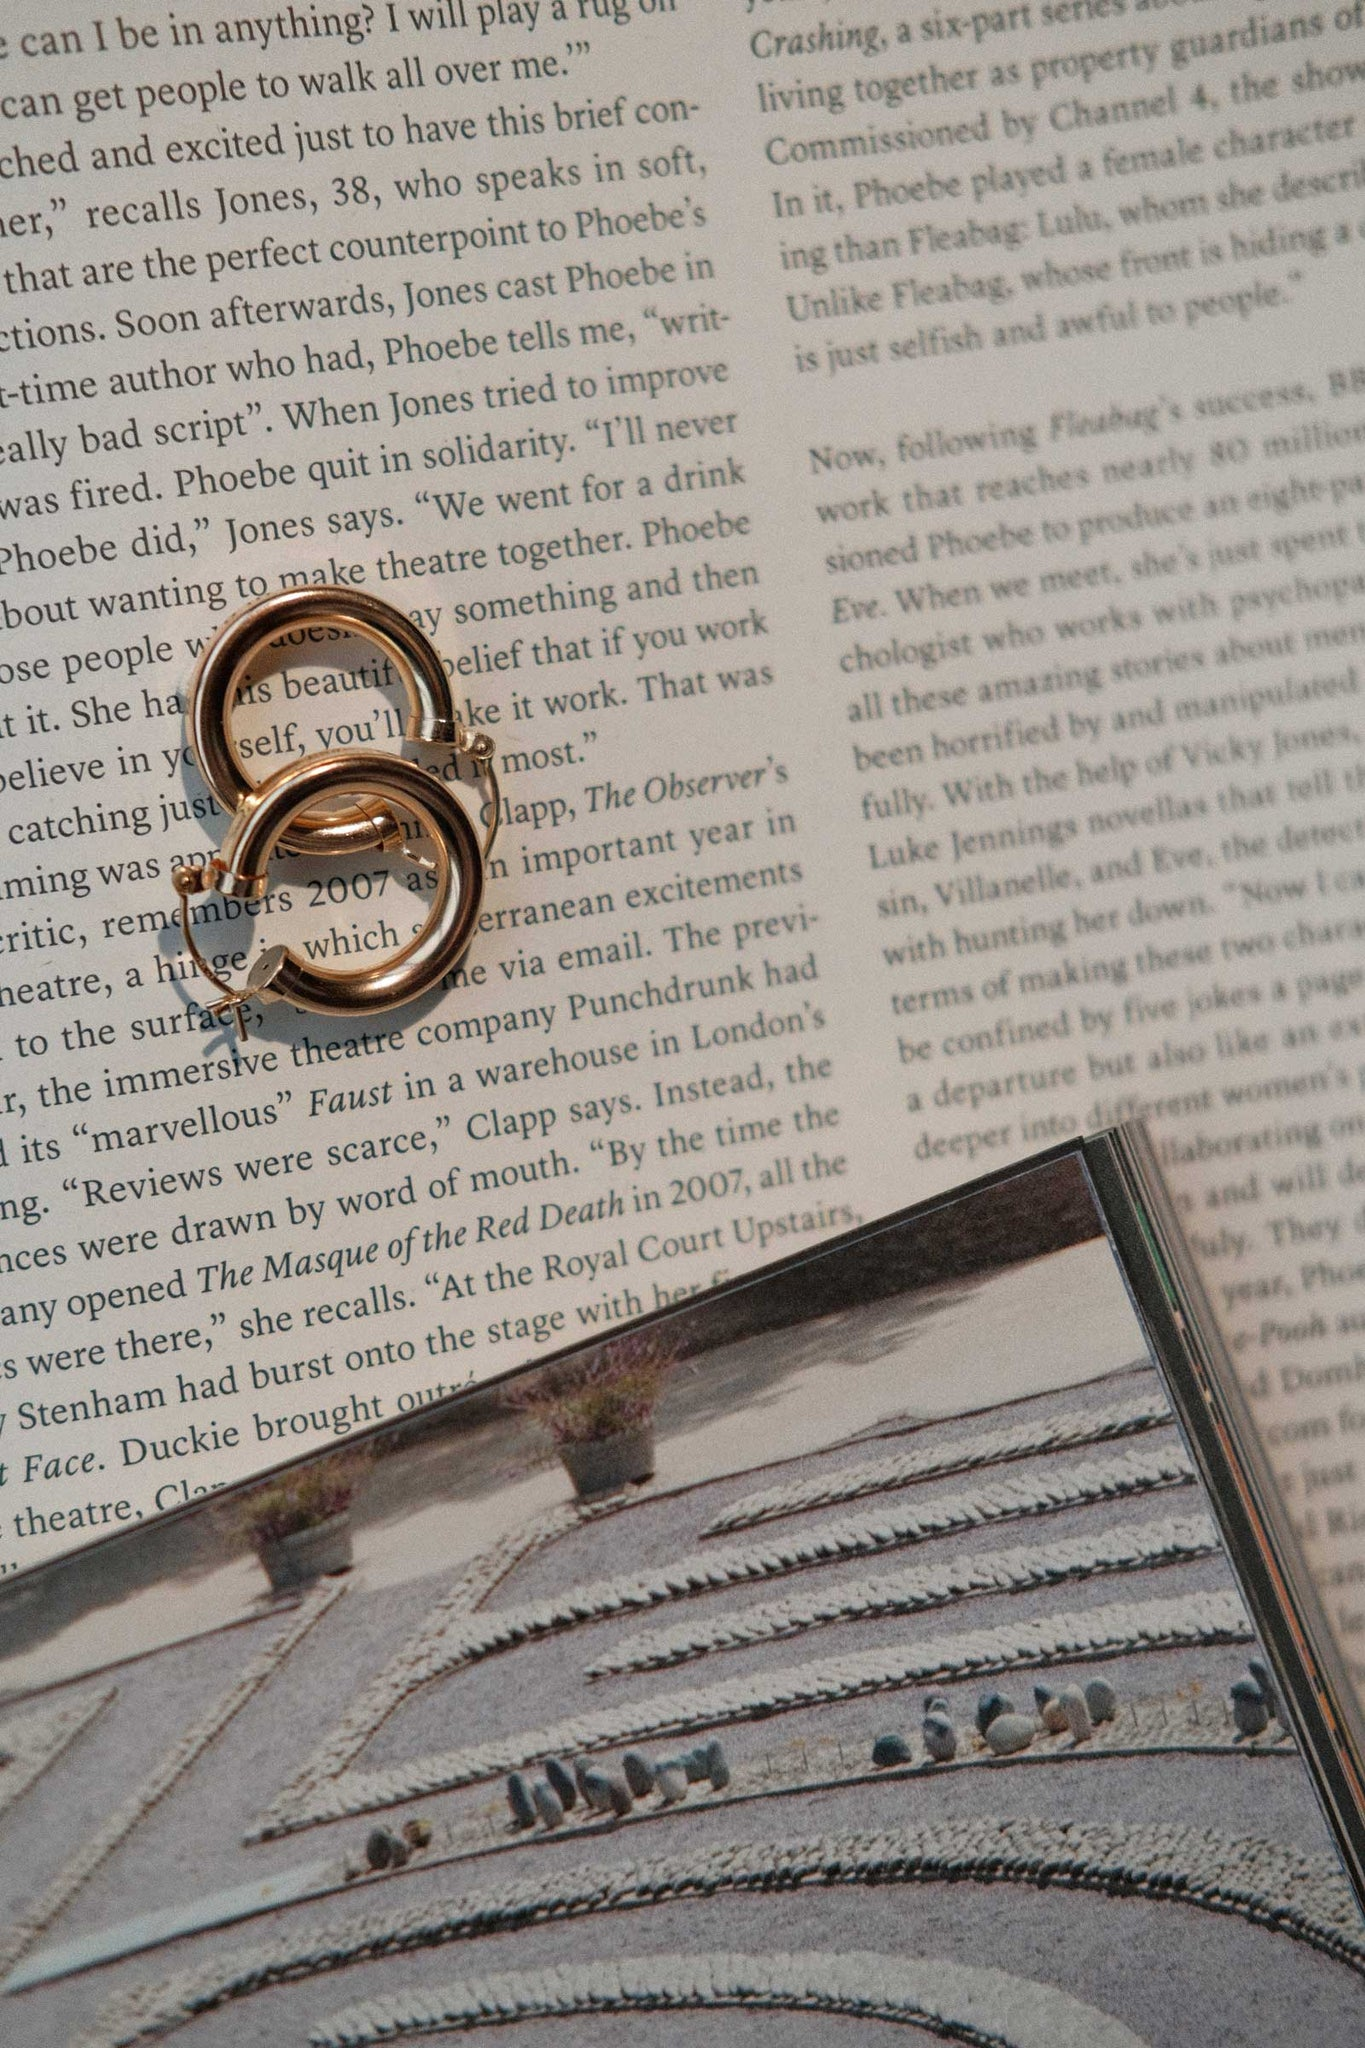 set of chunky hoop gold filled earrings lying on a newspaper